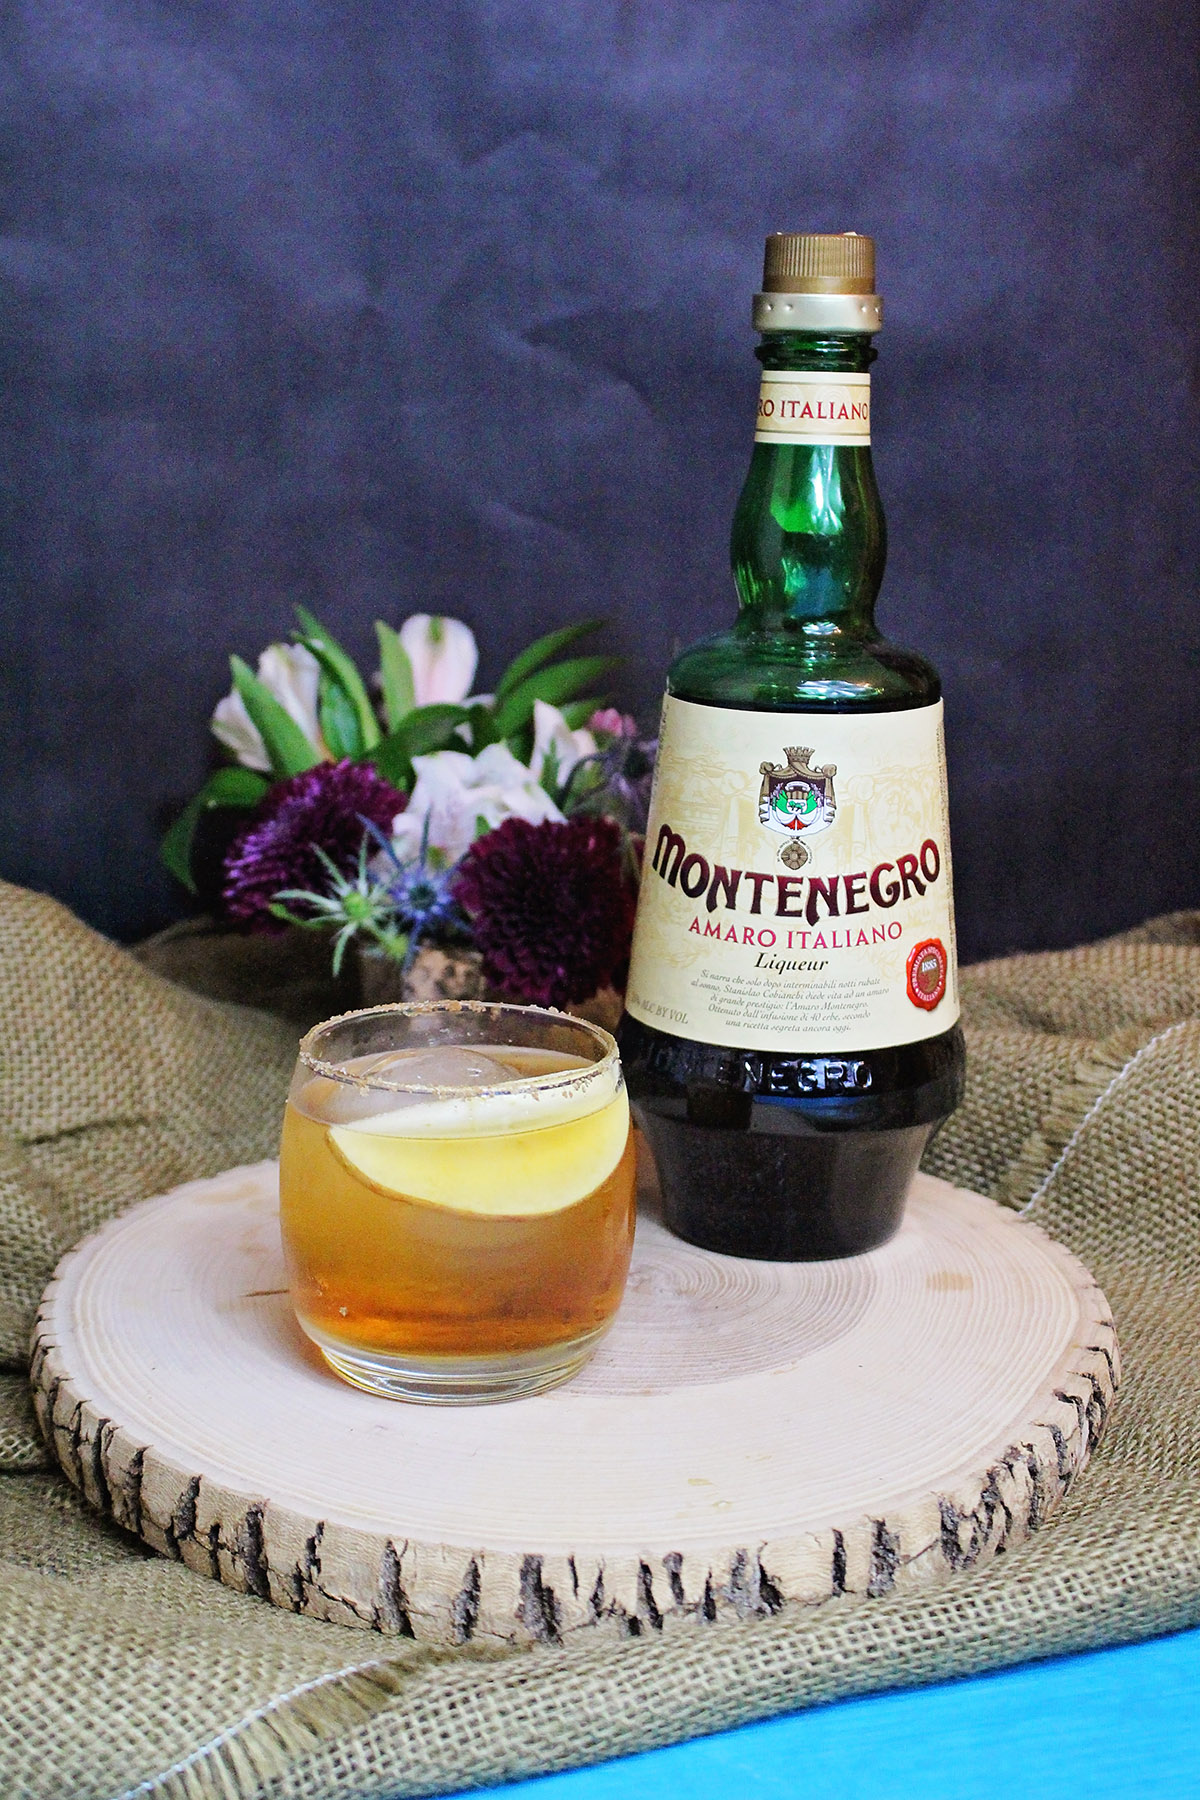 Fall Cocktail with Apple, Bourbon, and Amaro Montenegro